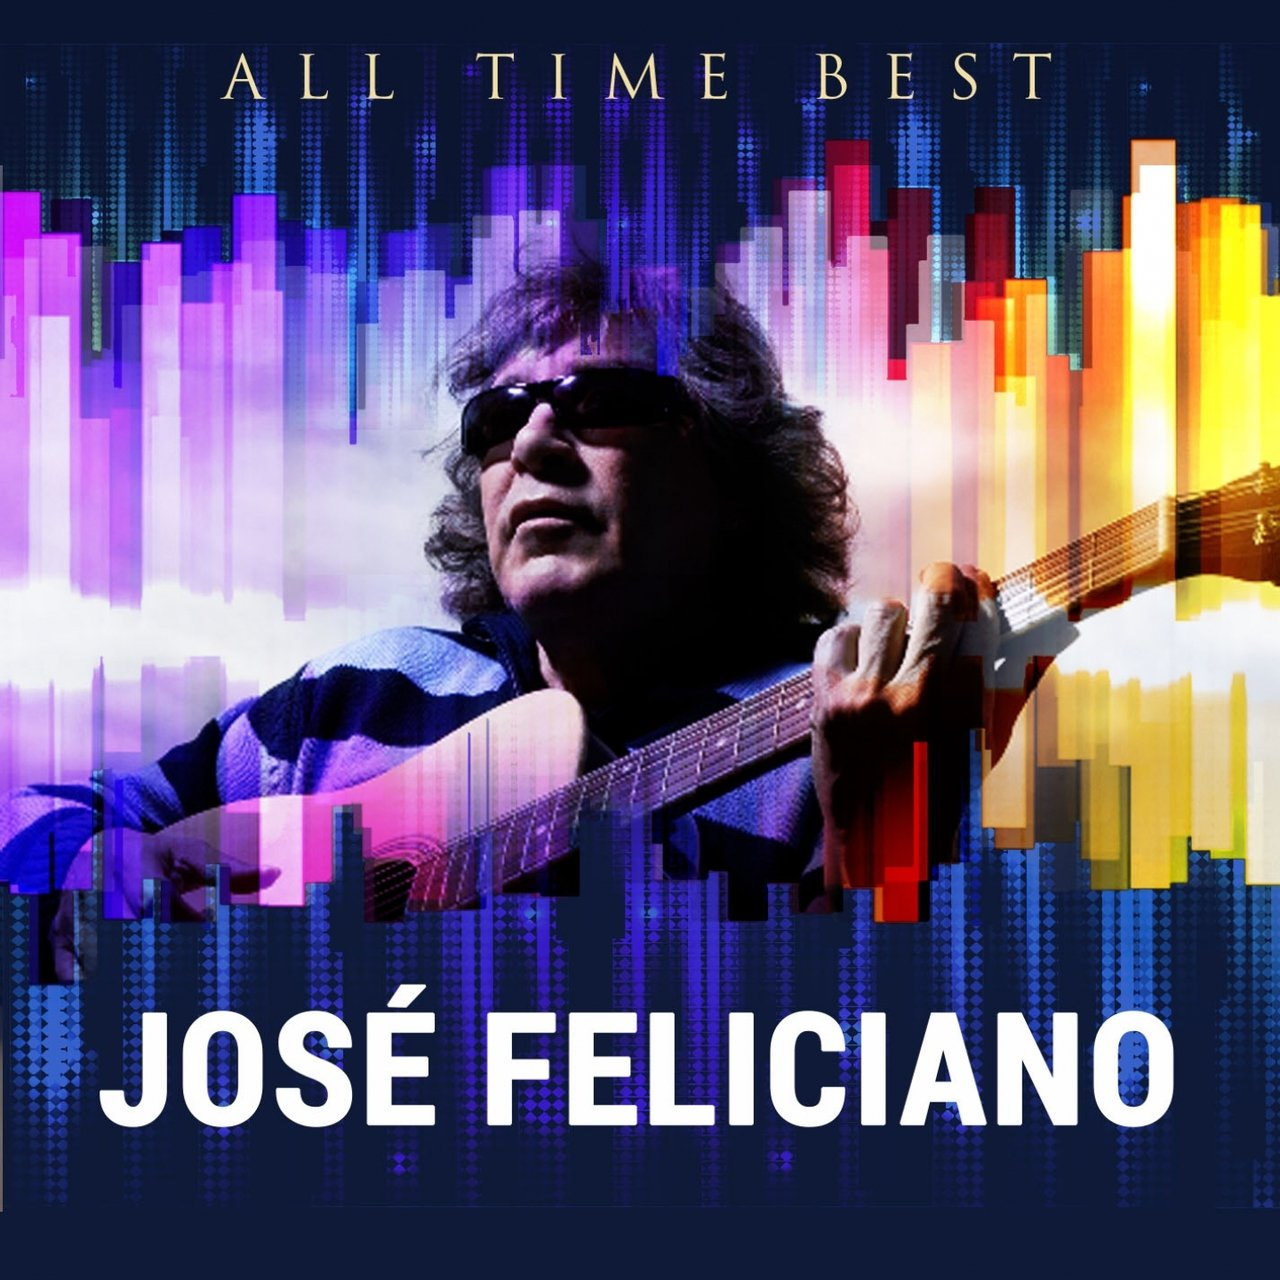 All Time Best: José Feliciano